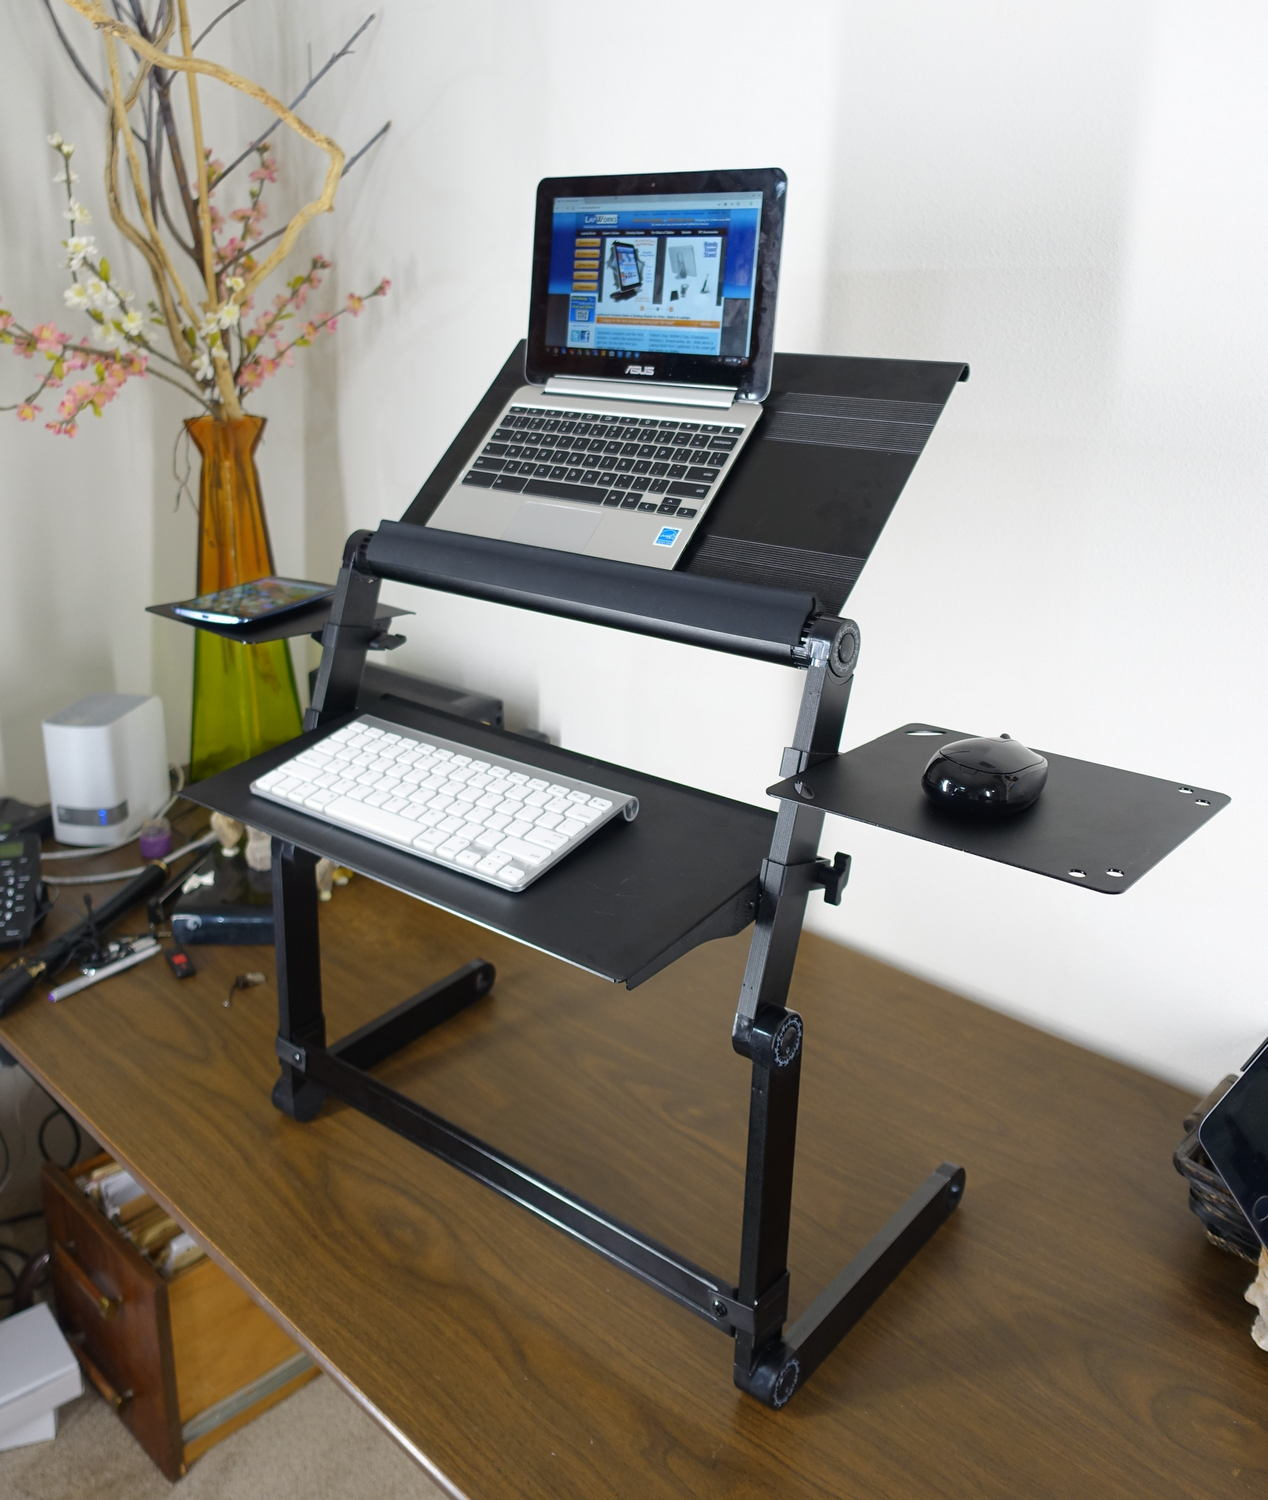 LapWorks Wizard Standing Desk for your Desktop or Table